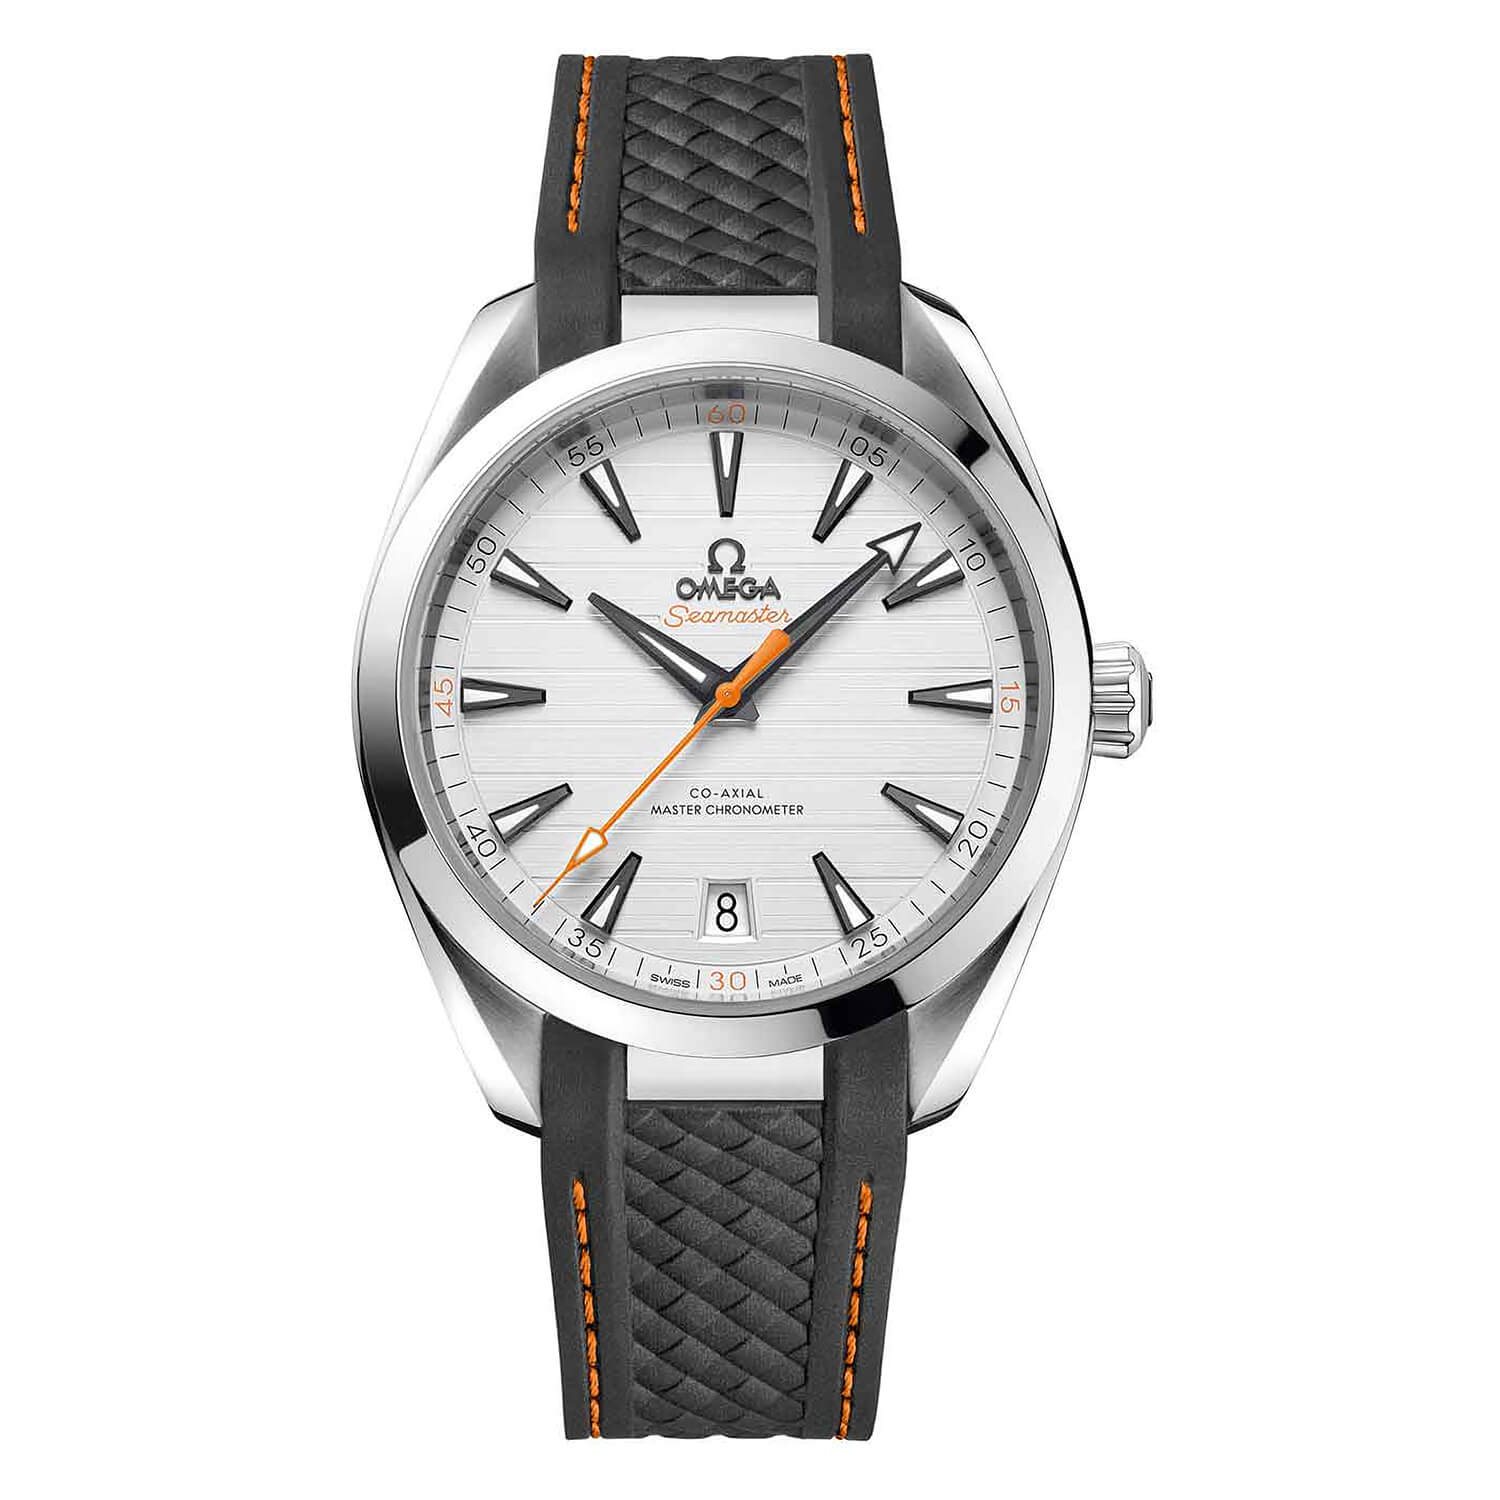 Omega Seamaster Aqua Terra Co-Axial Master Chronometer 41mm Grey Rubber Strap Men's Watch